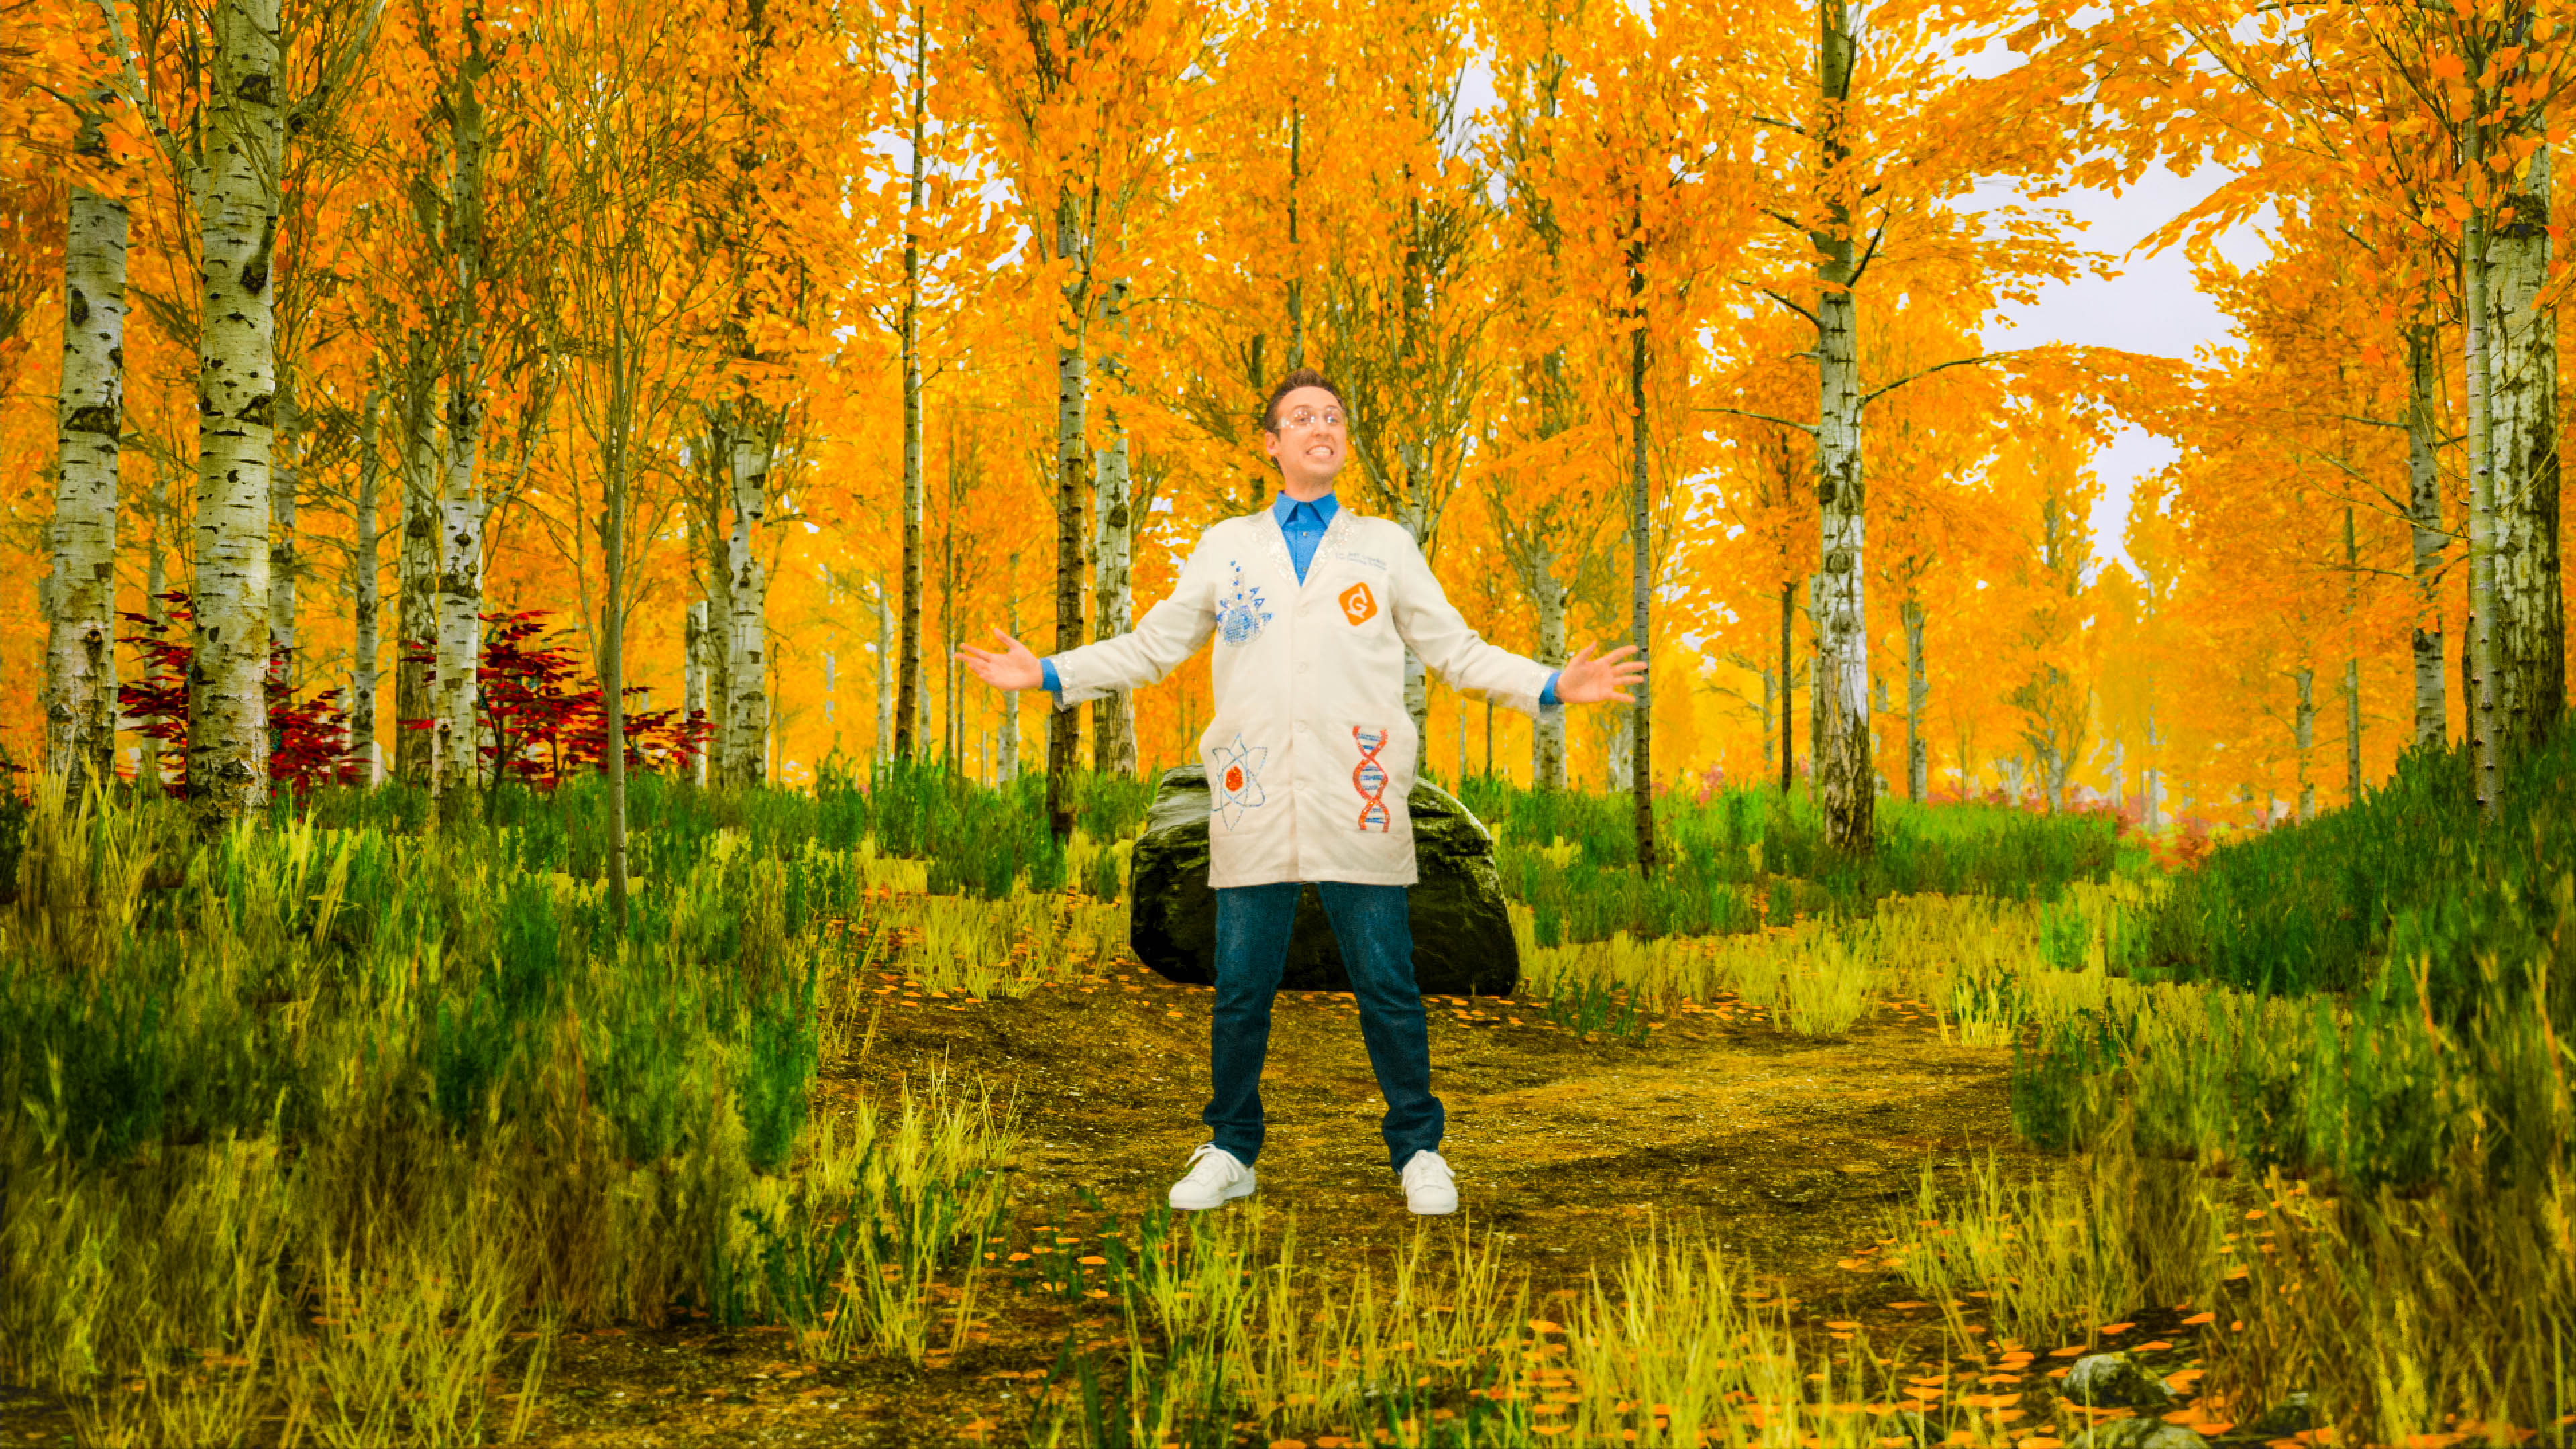 scientist stands in the forest with leaves turning colors due to the fall season